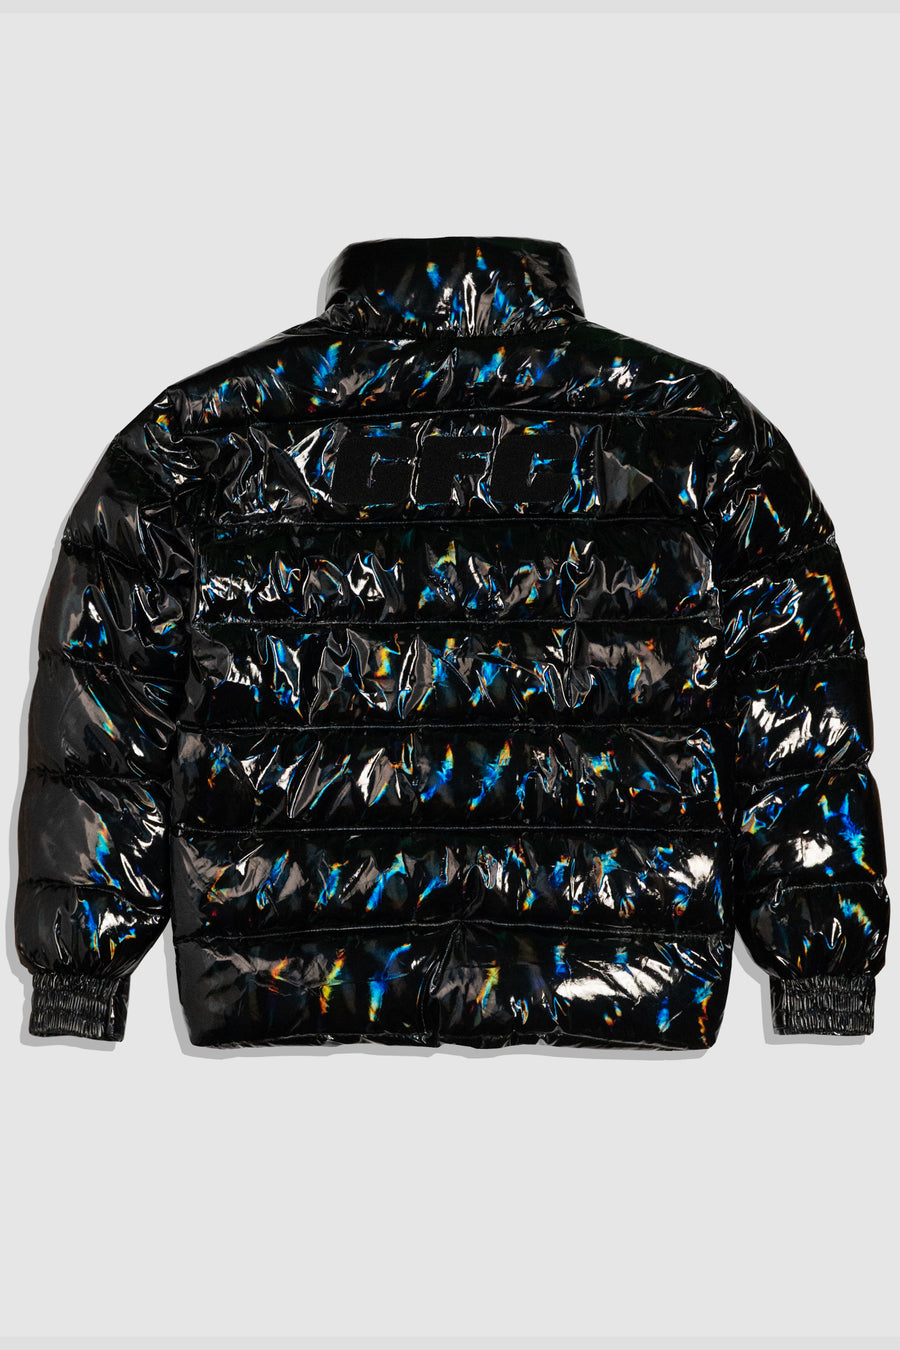 ROADMAN IRIDESCENT PUFFER